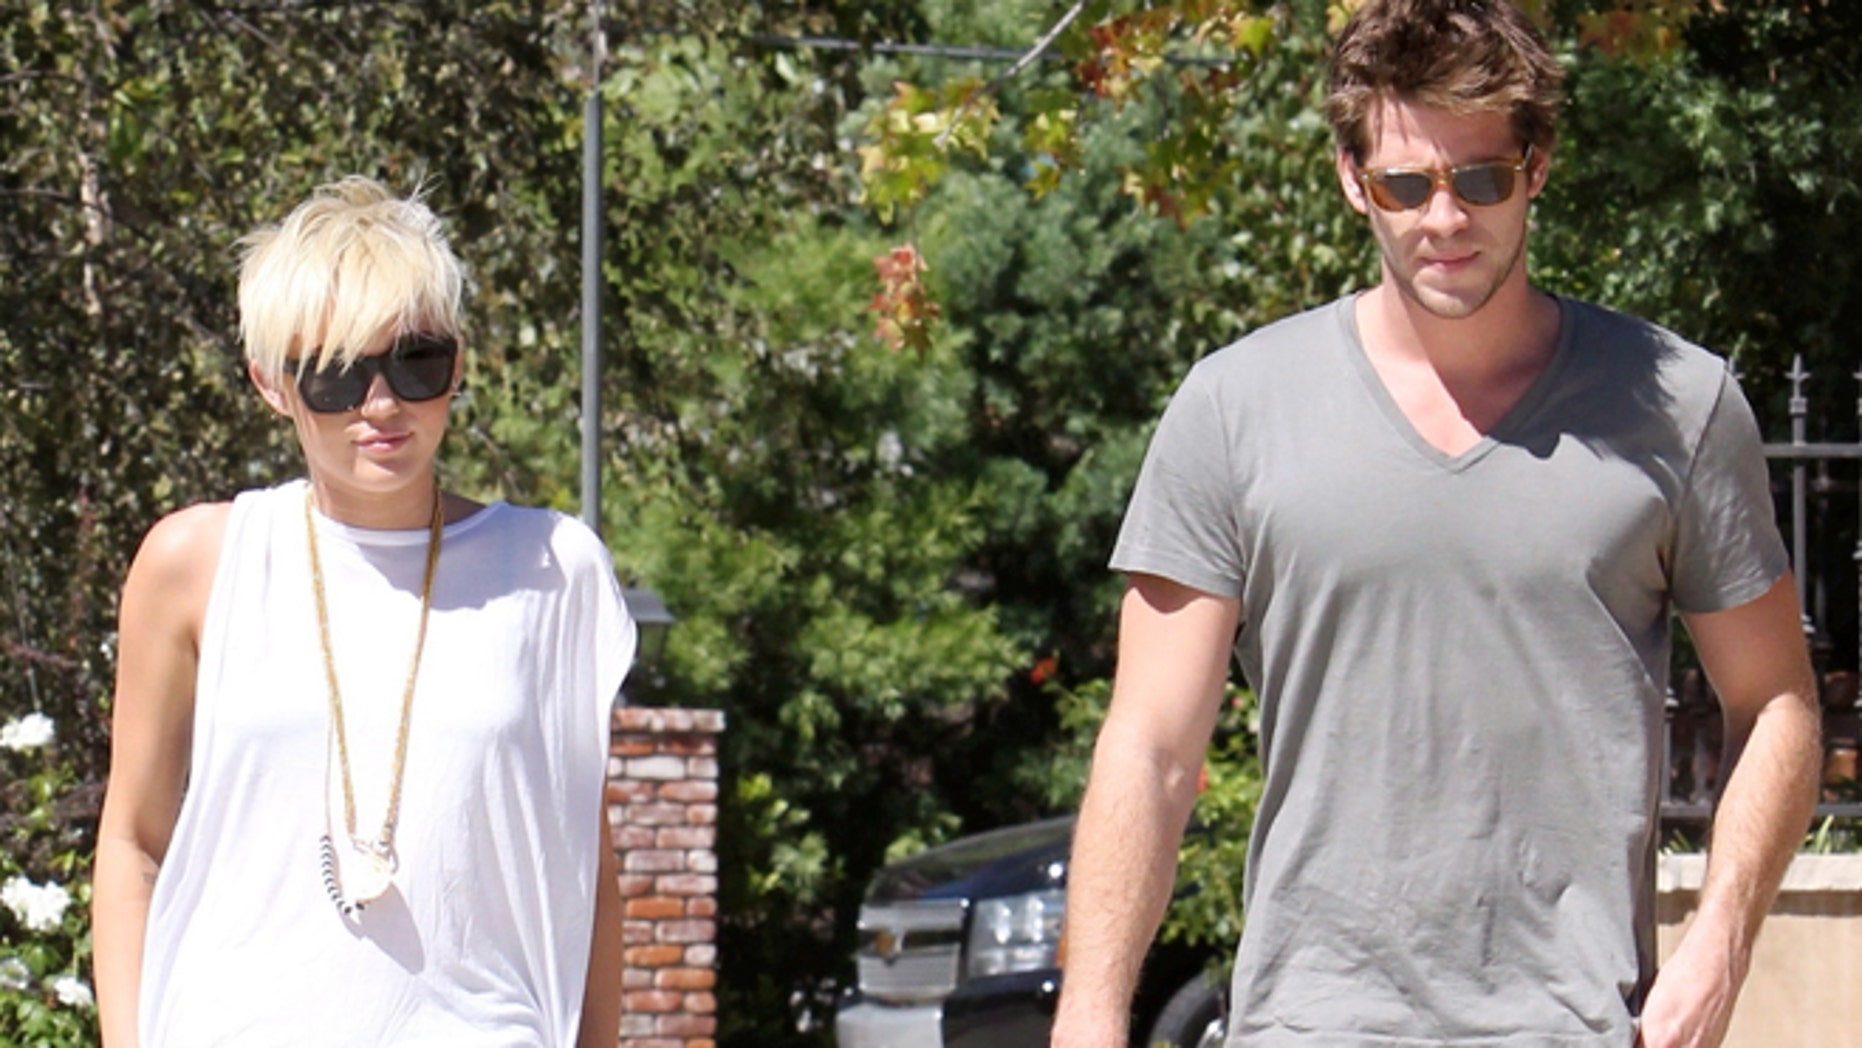 Miley Cyrus and Liam Hemsworth visit a friend in Pasadena. Sunday, September 2, 2012.